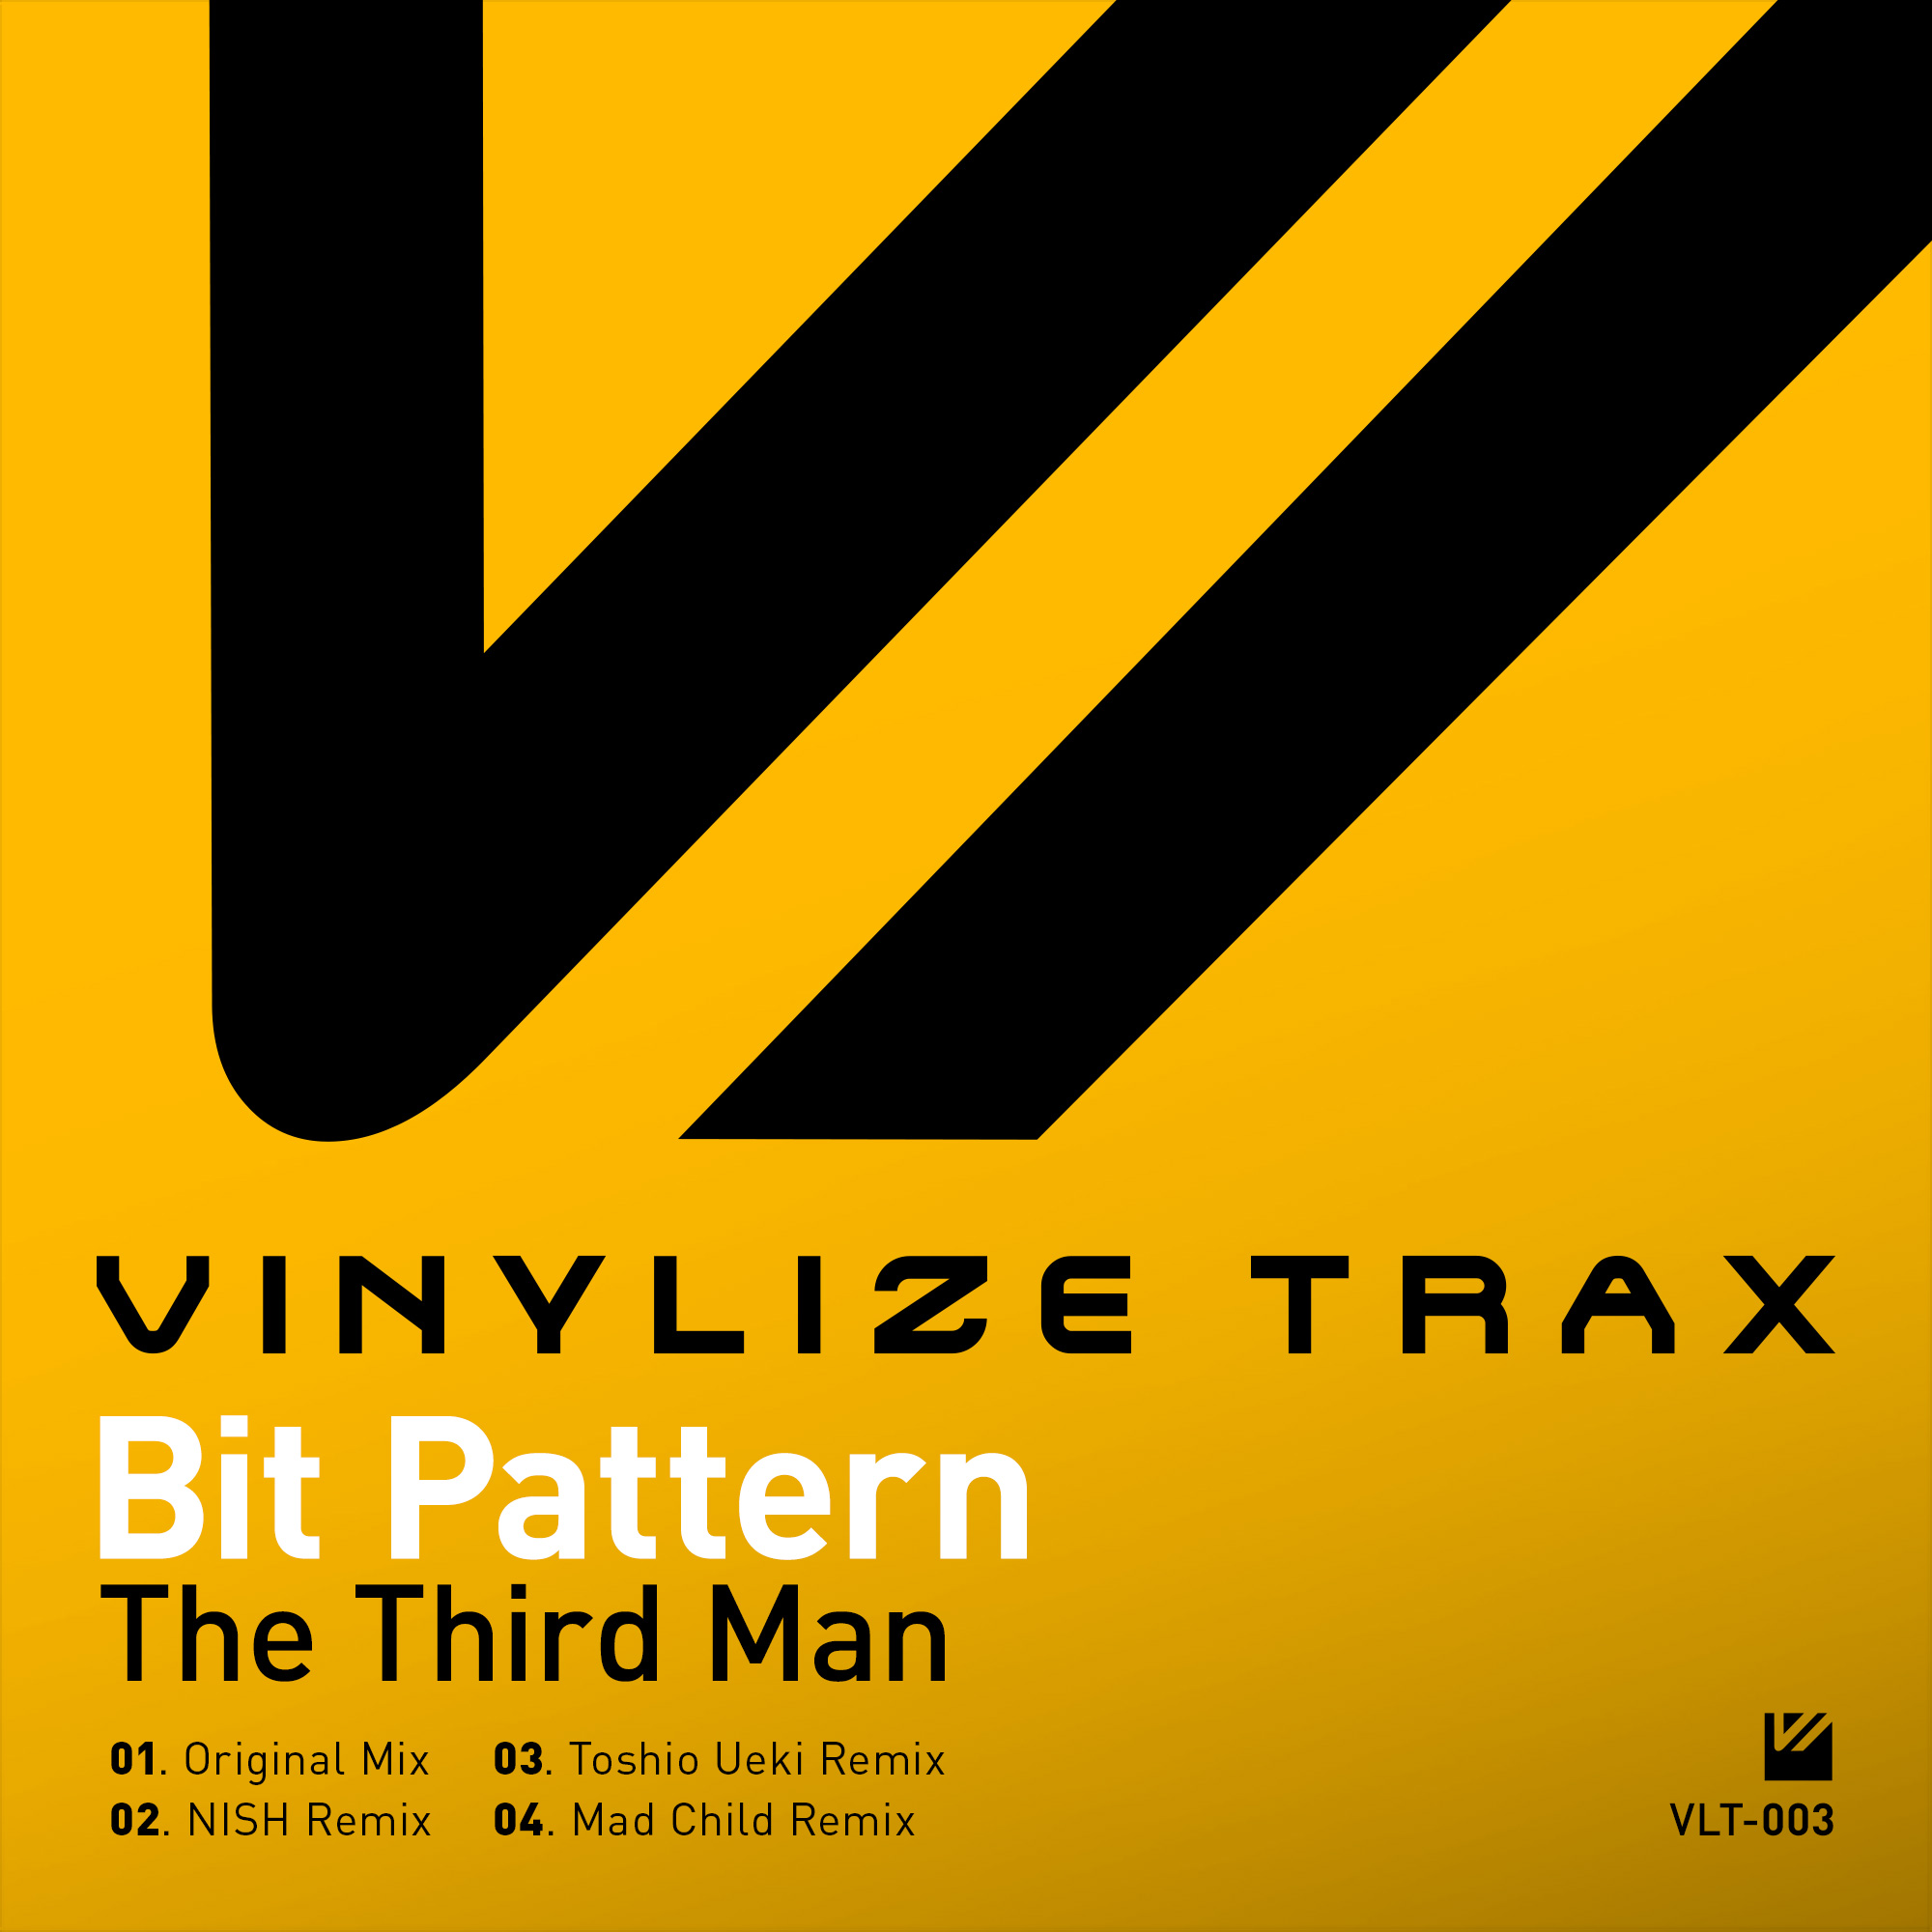 BIT PATTERN / THE THIRD MAN